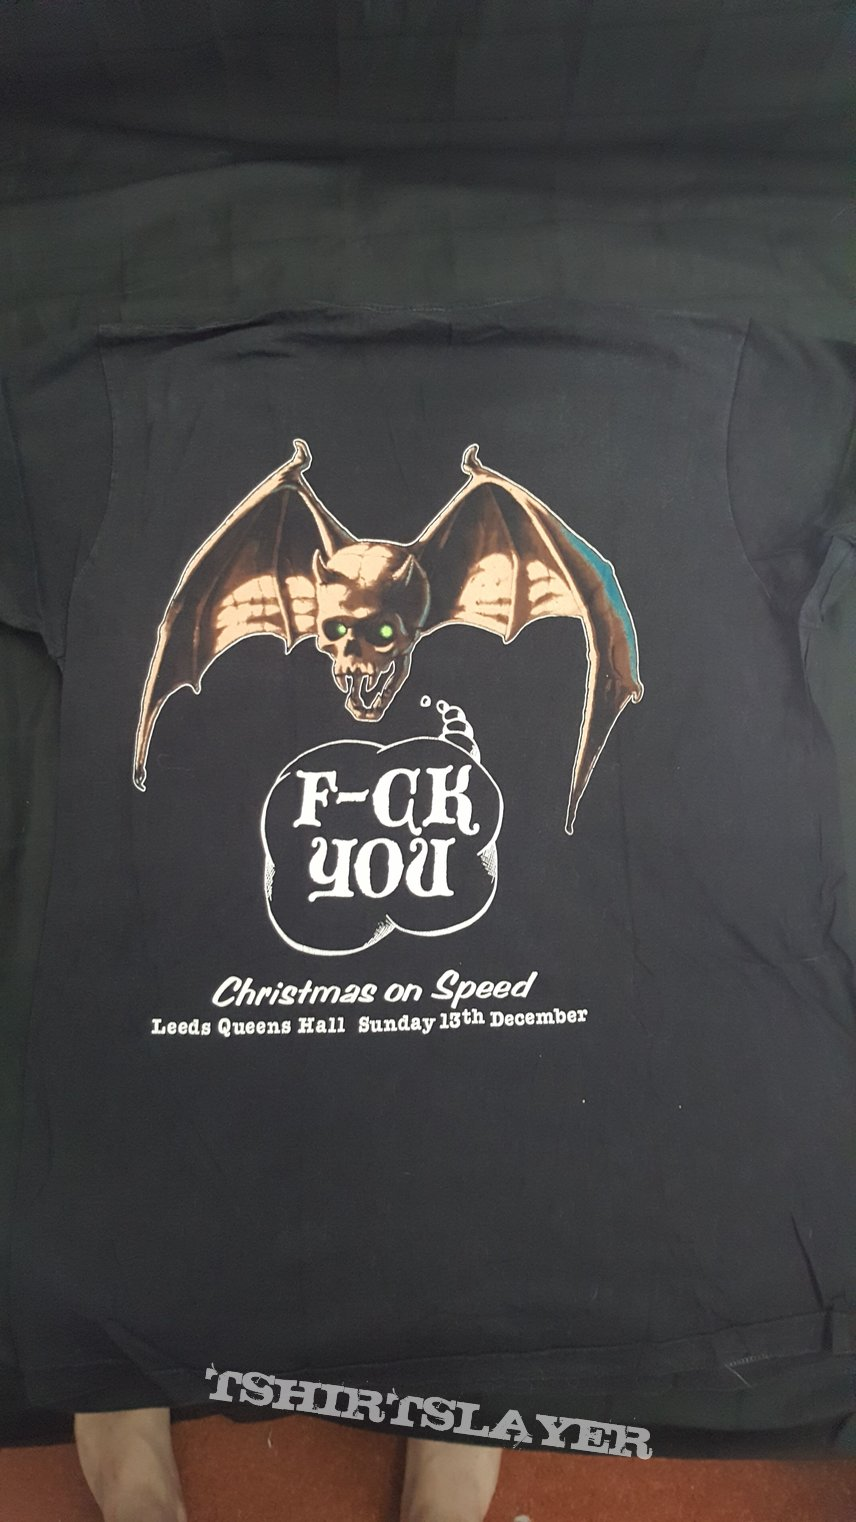 Overkill - F-ck You (Christmas on speed) T-shirt size L